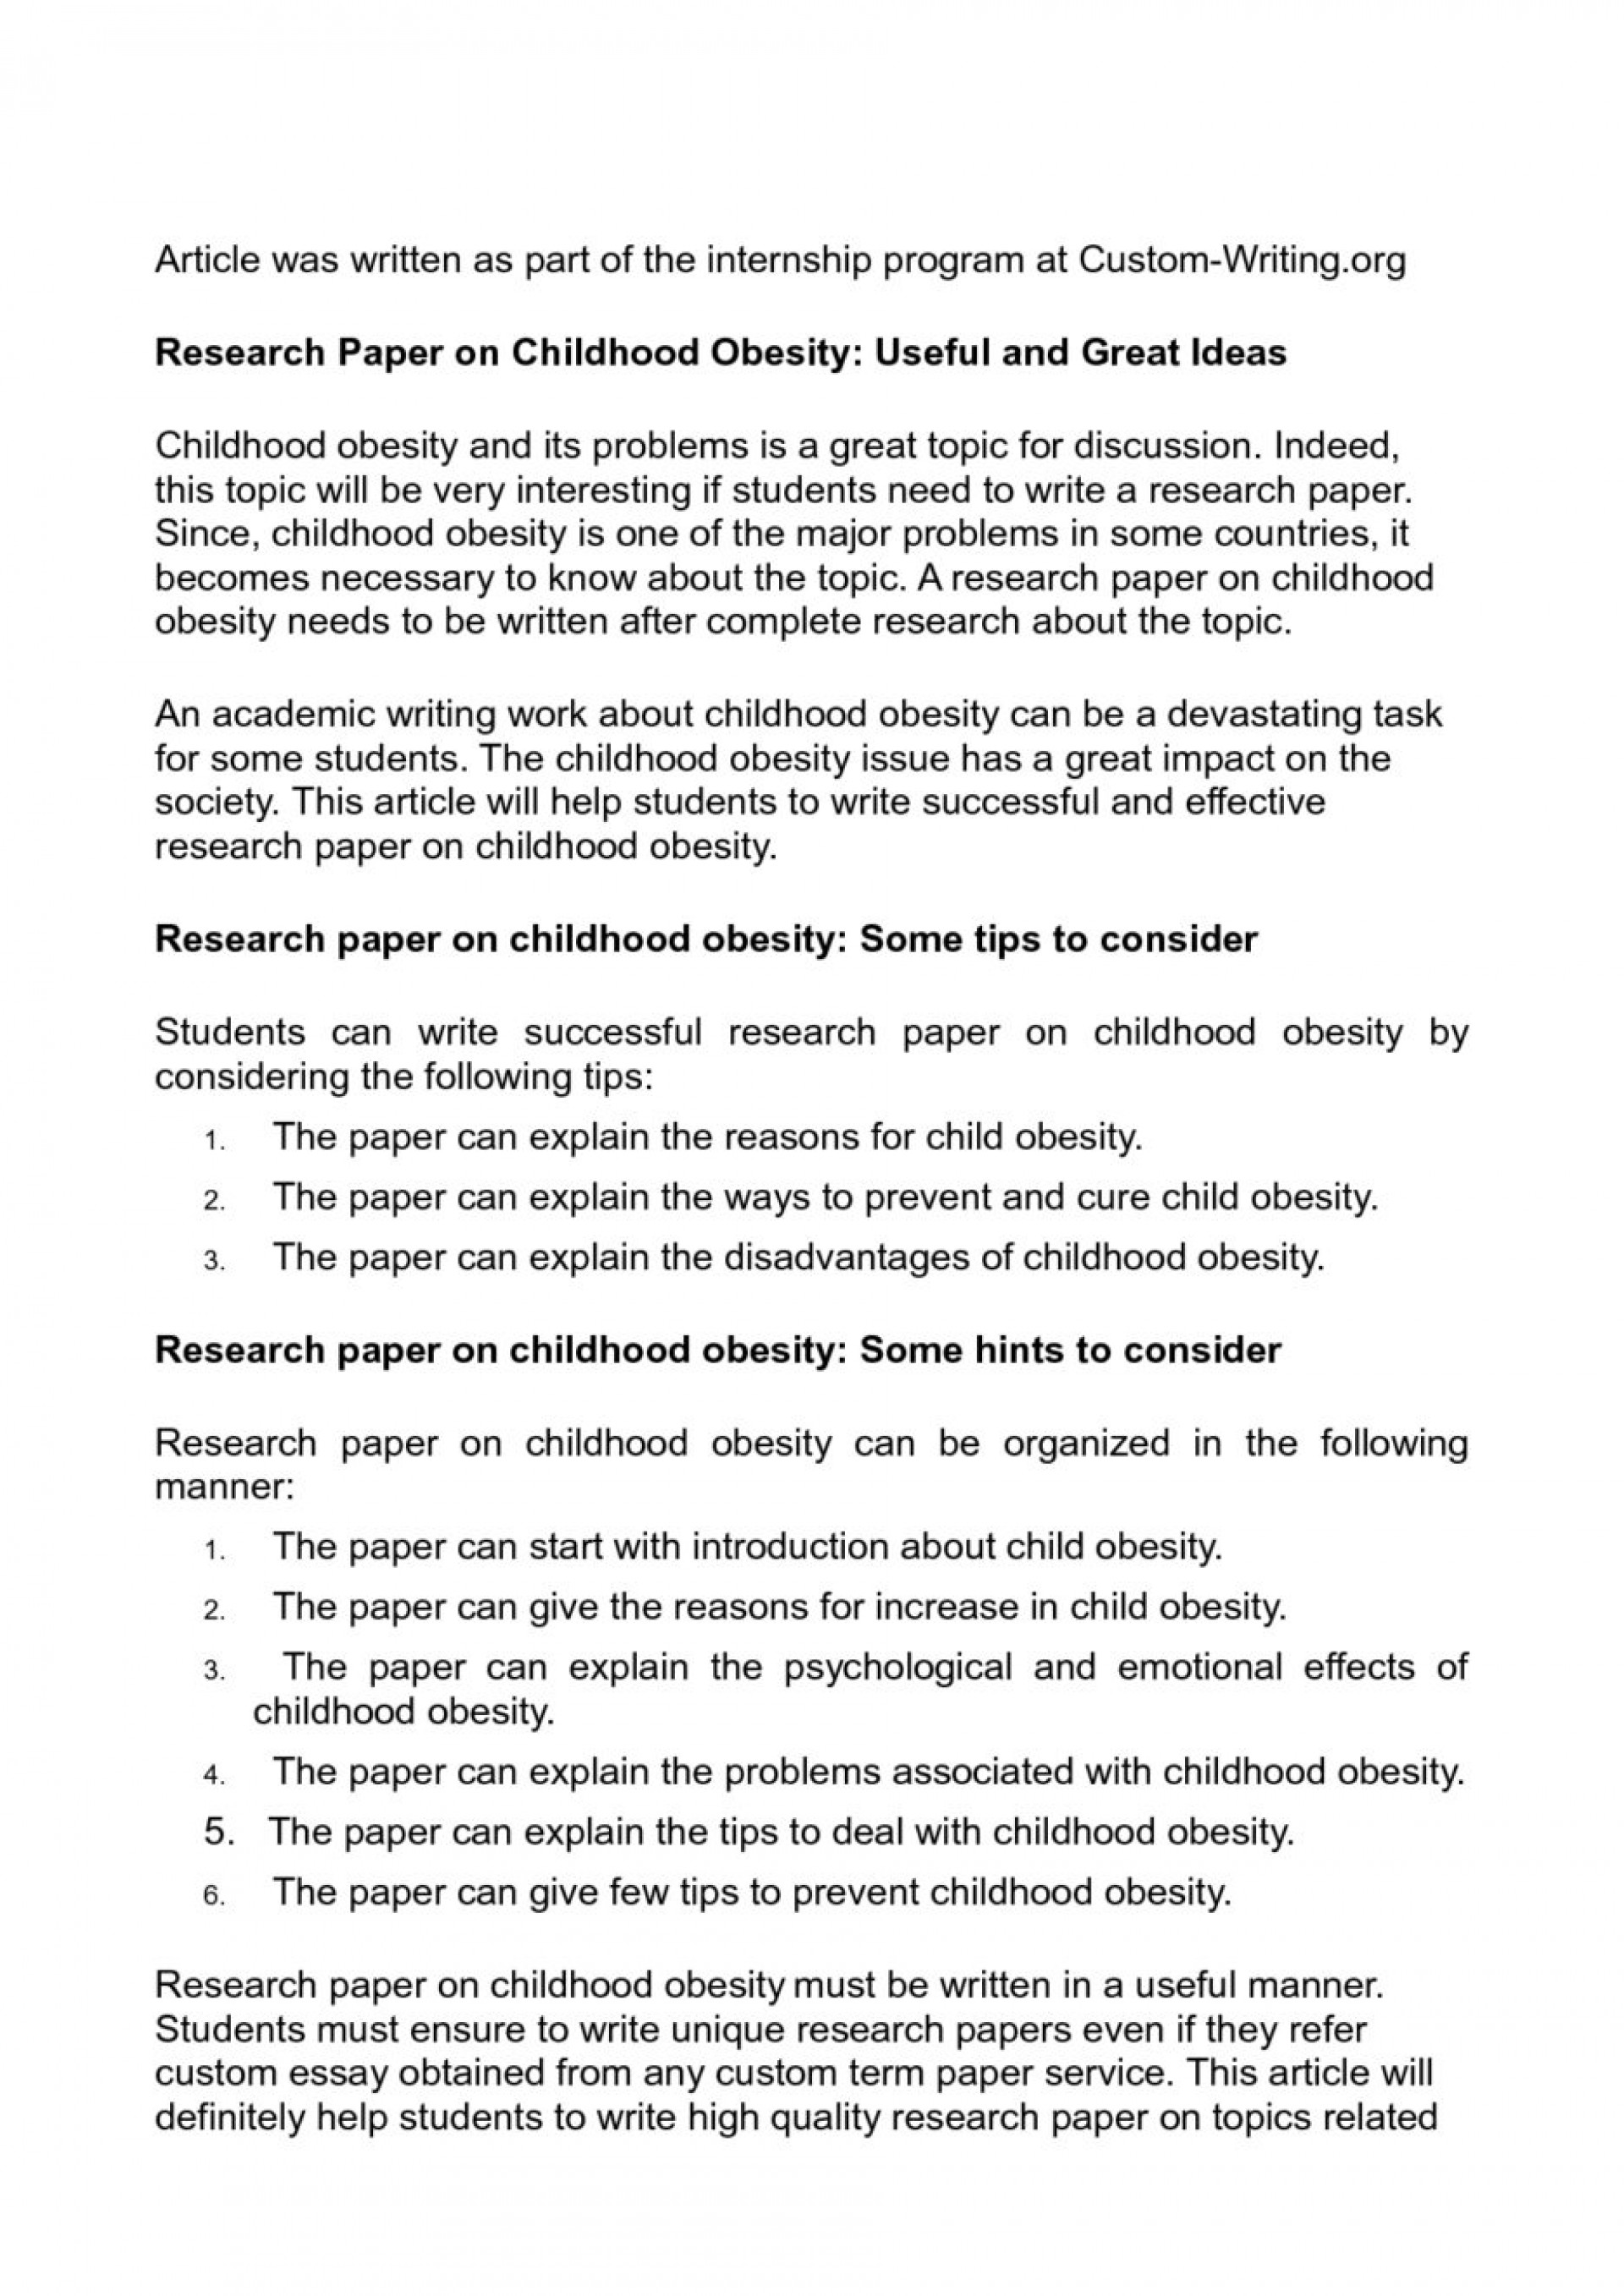 004 child obesity essay example childhood causes and effects cause